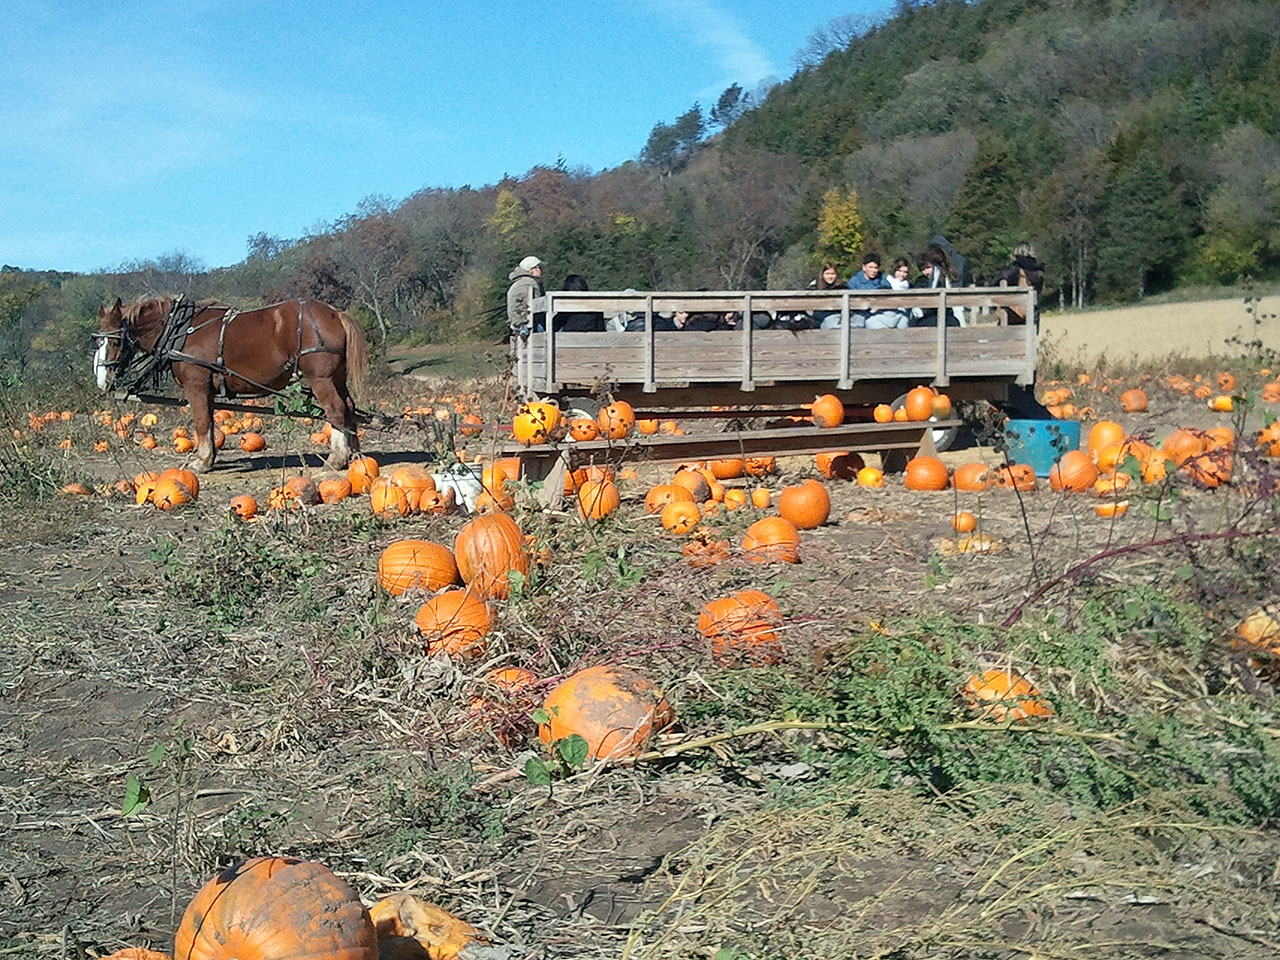 Lots of pumpkins left